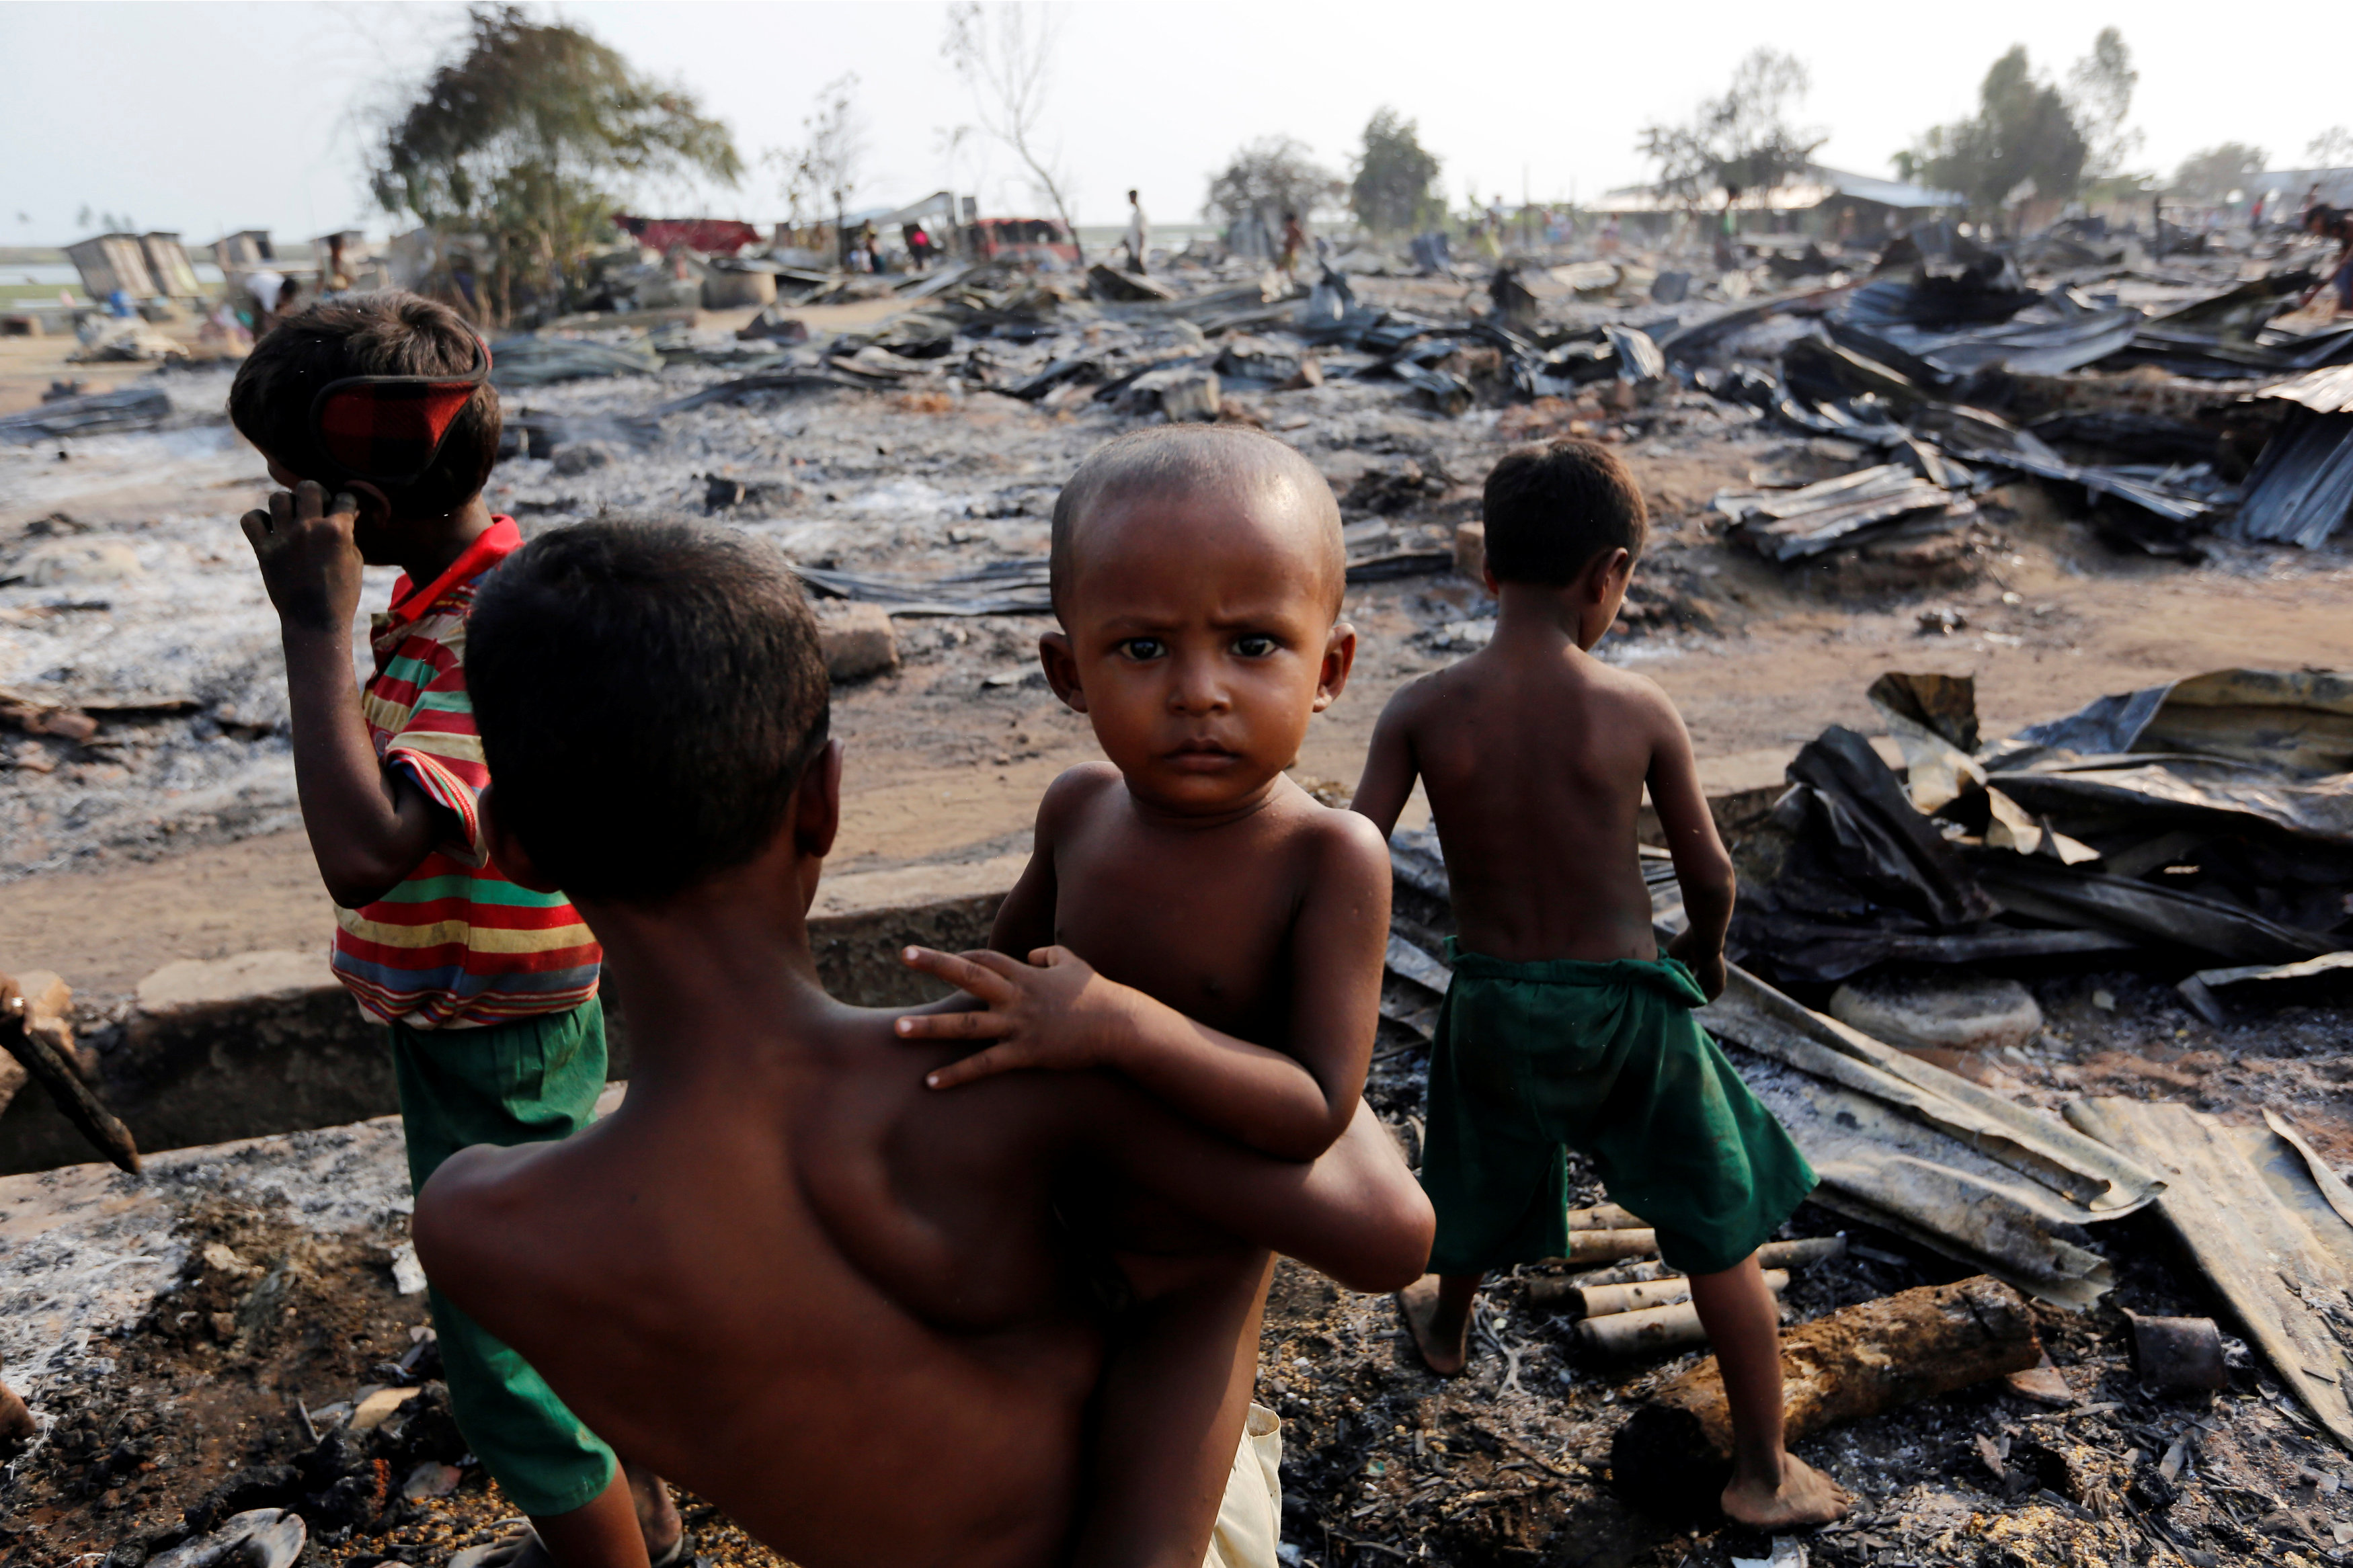 Boys stand among debris after fire destroyed shelters at a camp for internally displaced Rohingya Muslims in the western Rakhine State near Sittwe